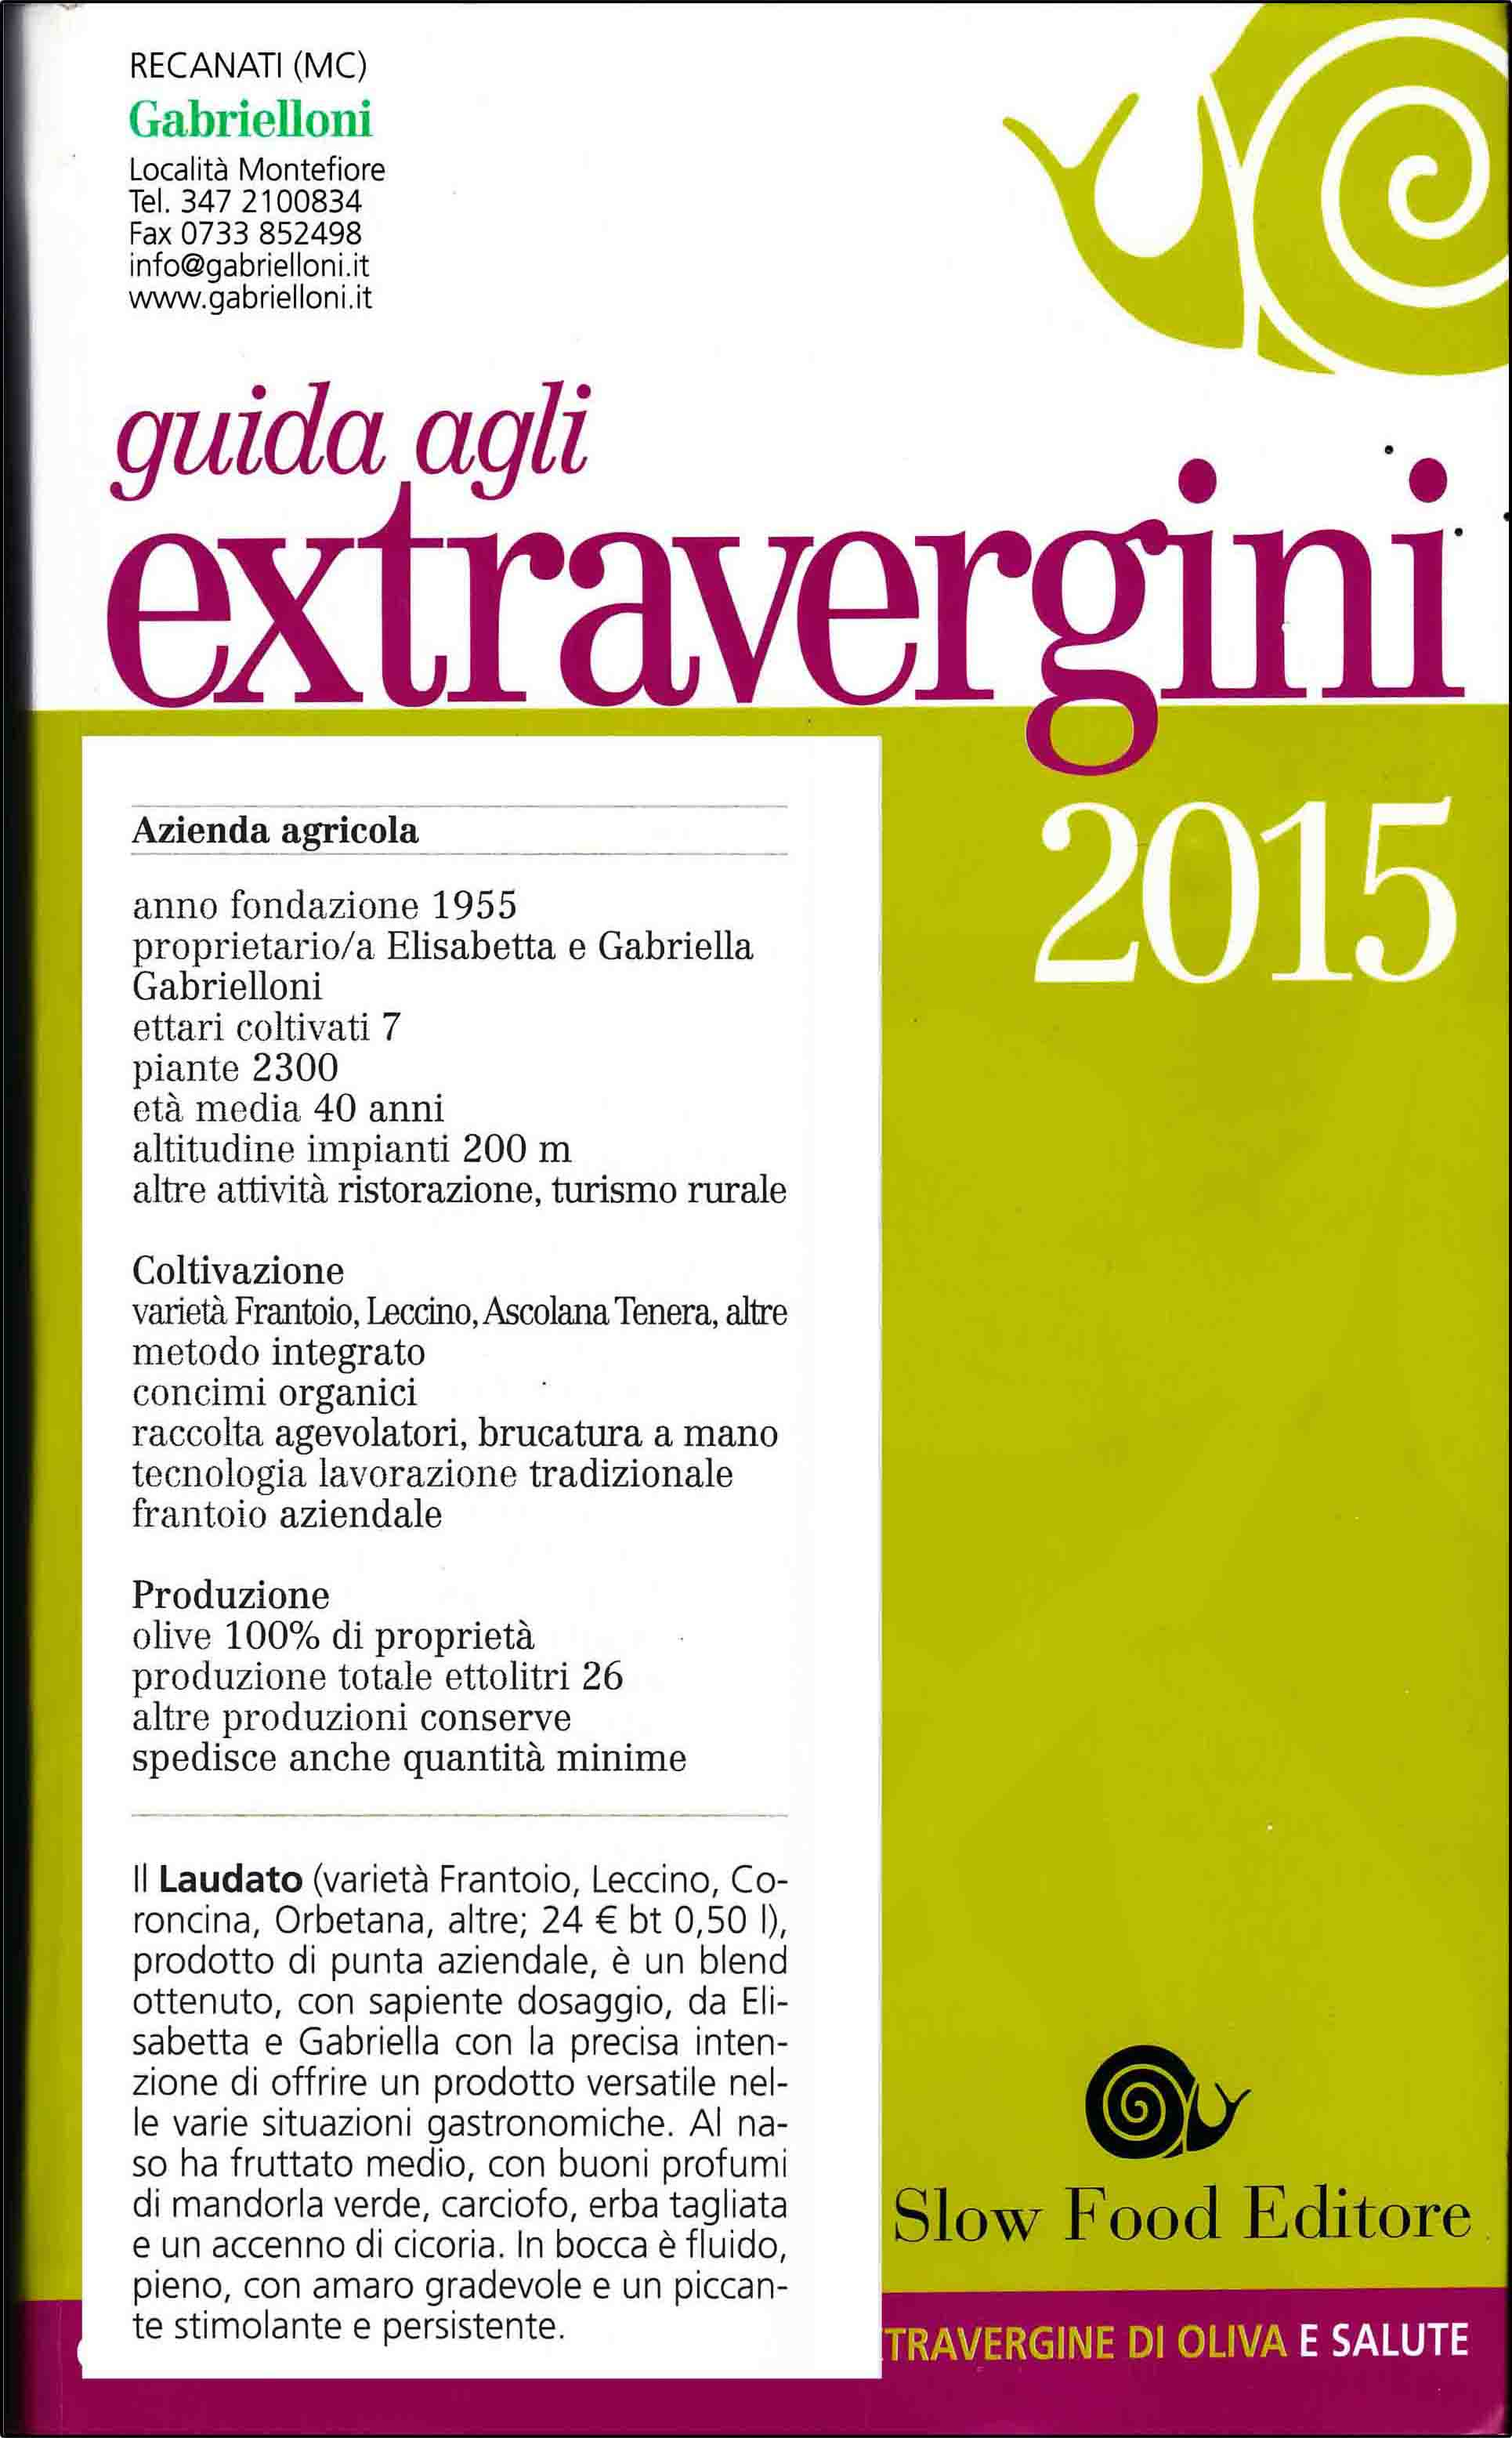 Slow Food Guide to Extra Virgin Olive Oils 2015